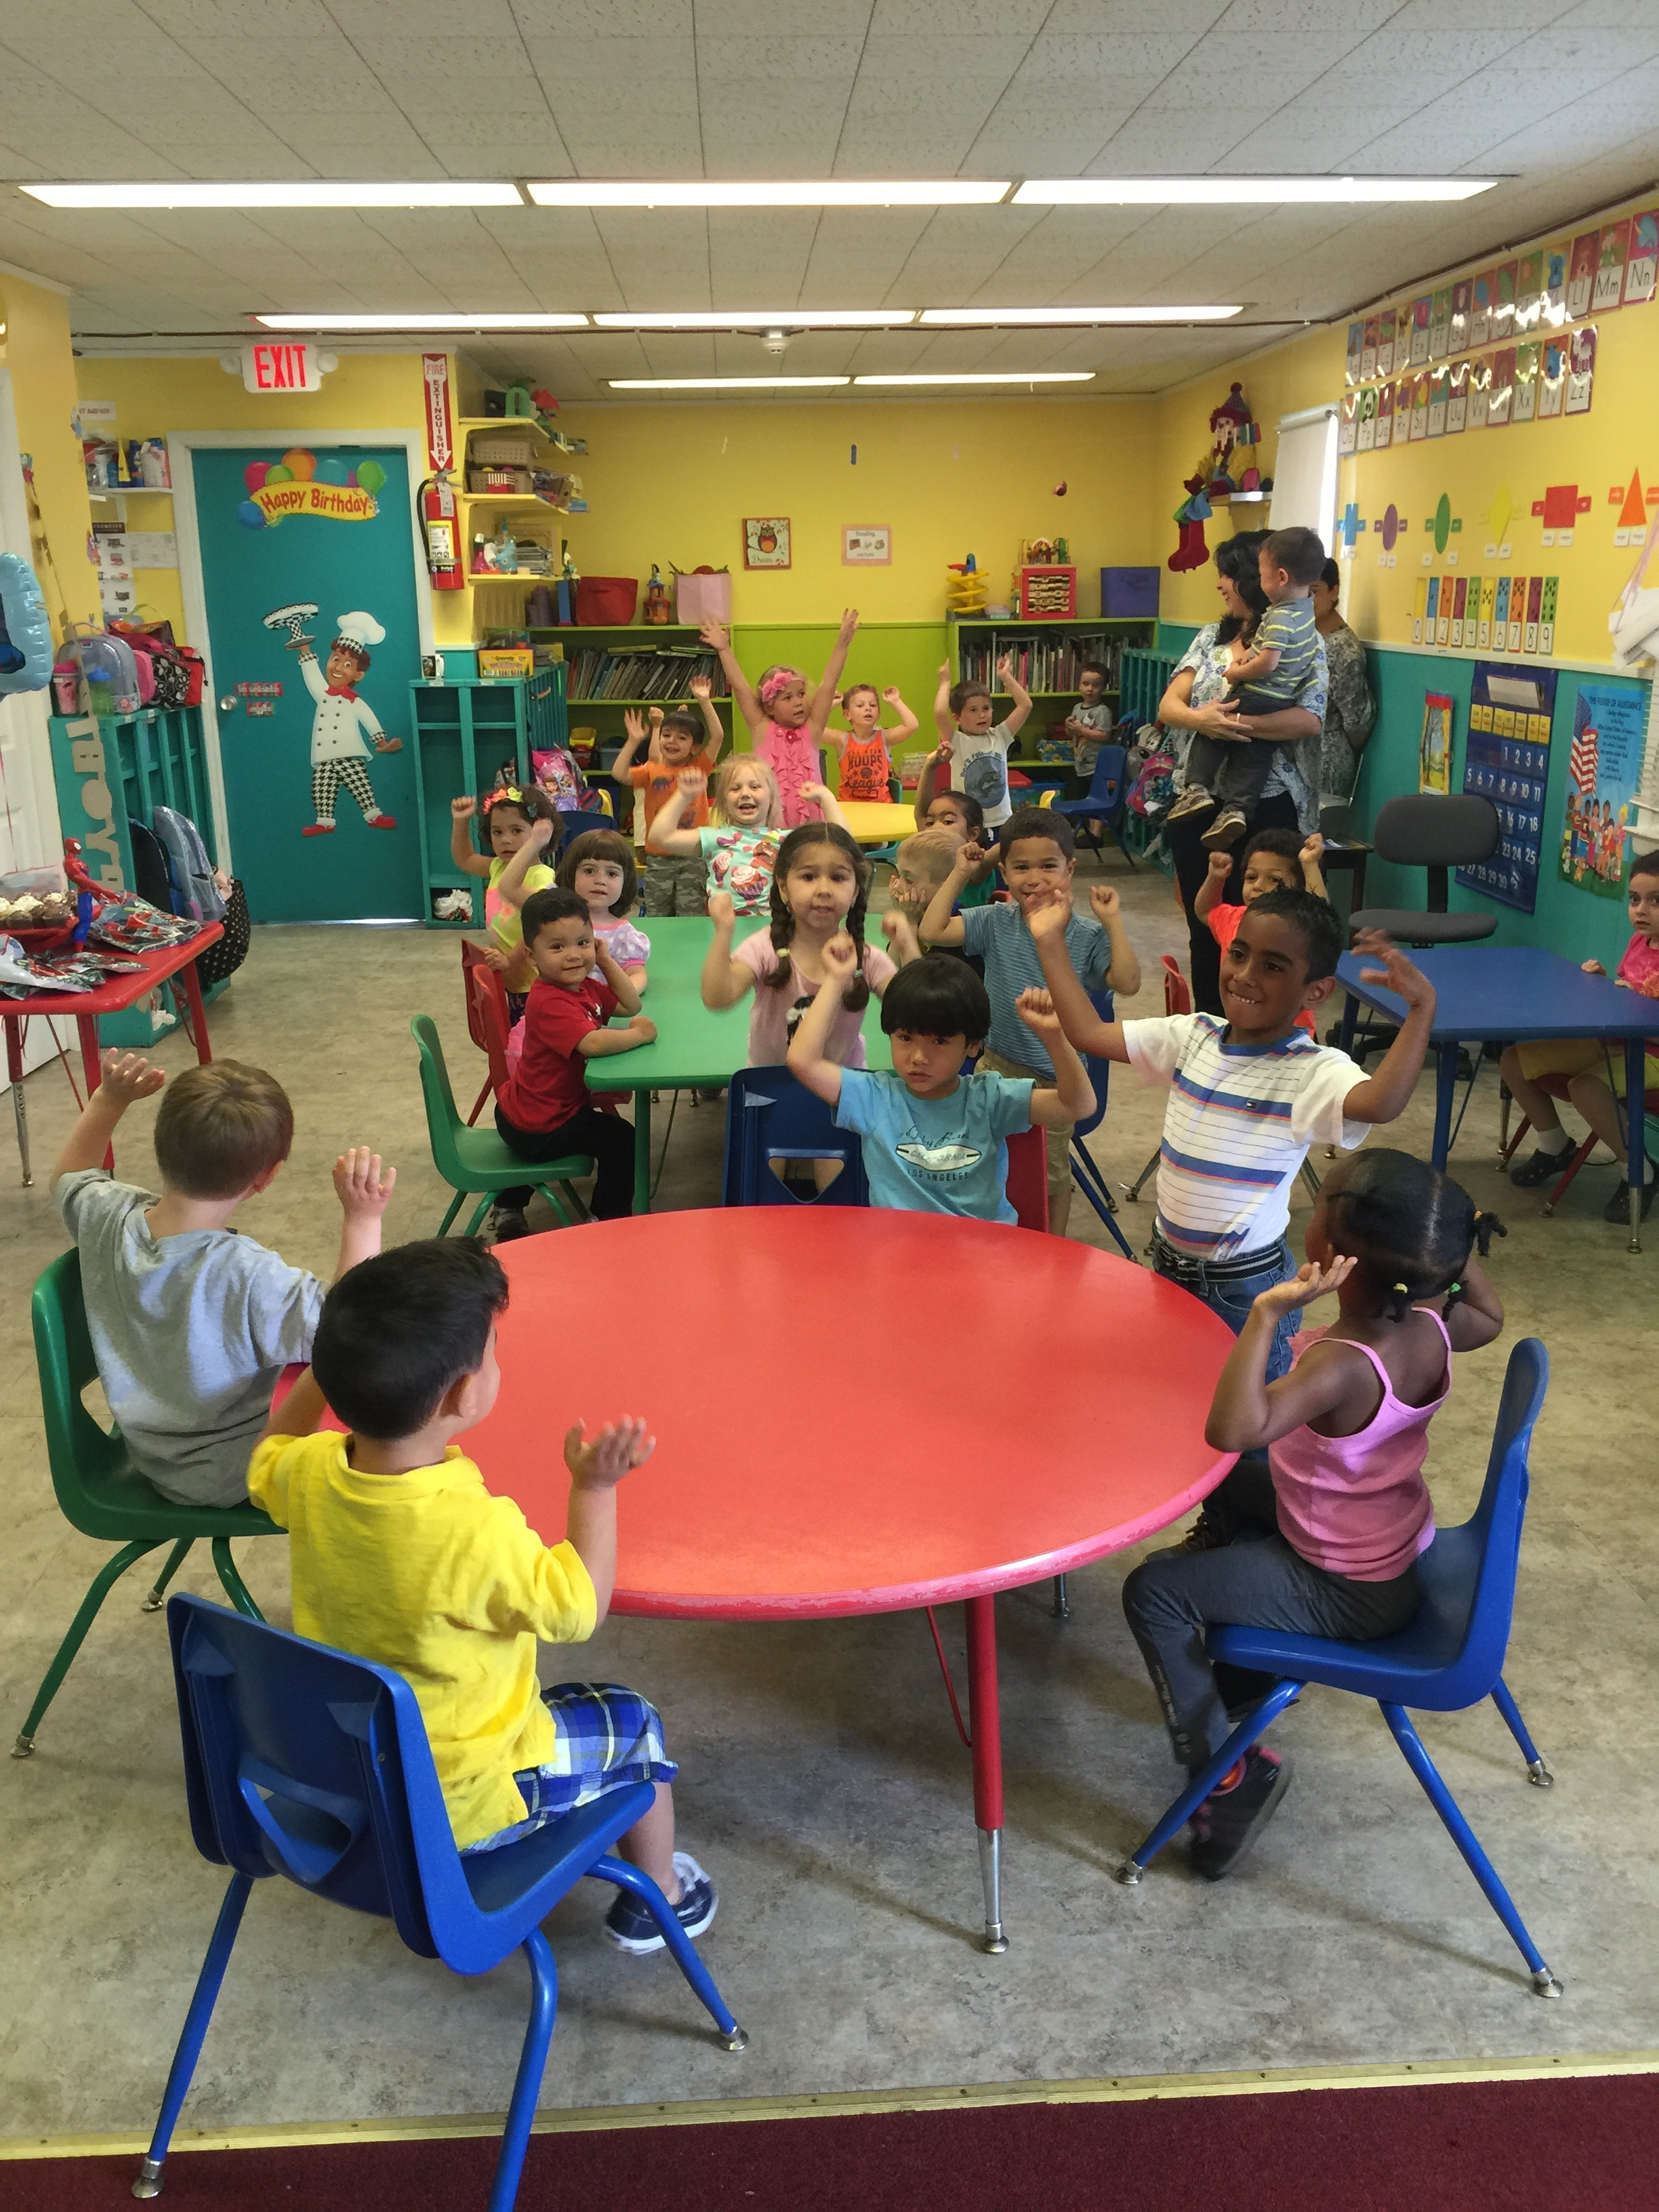 Participation In The Classroom